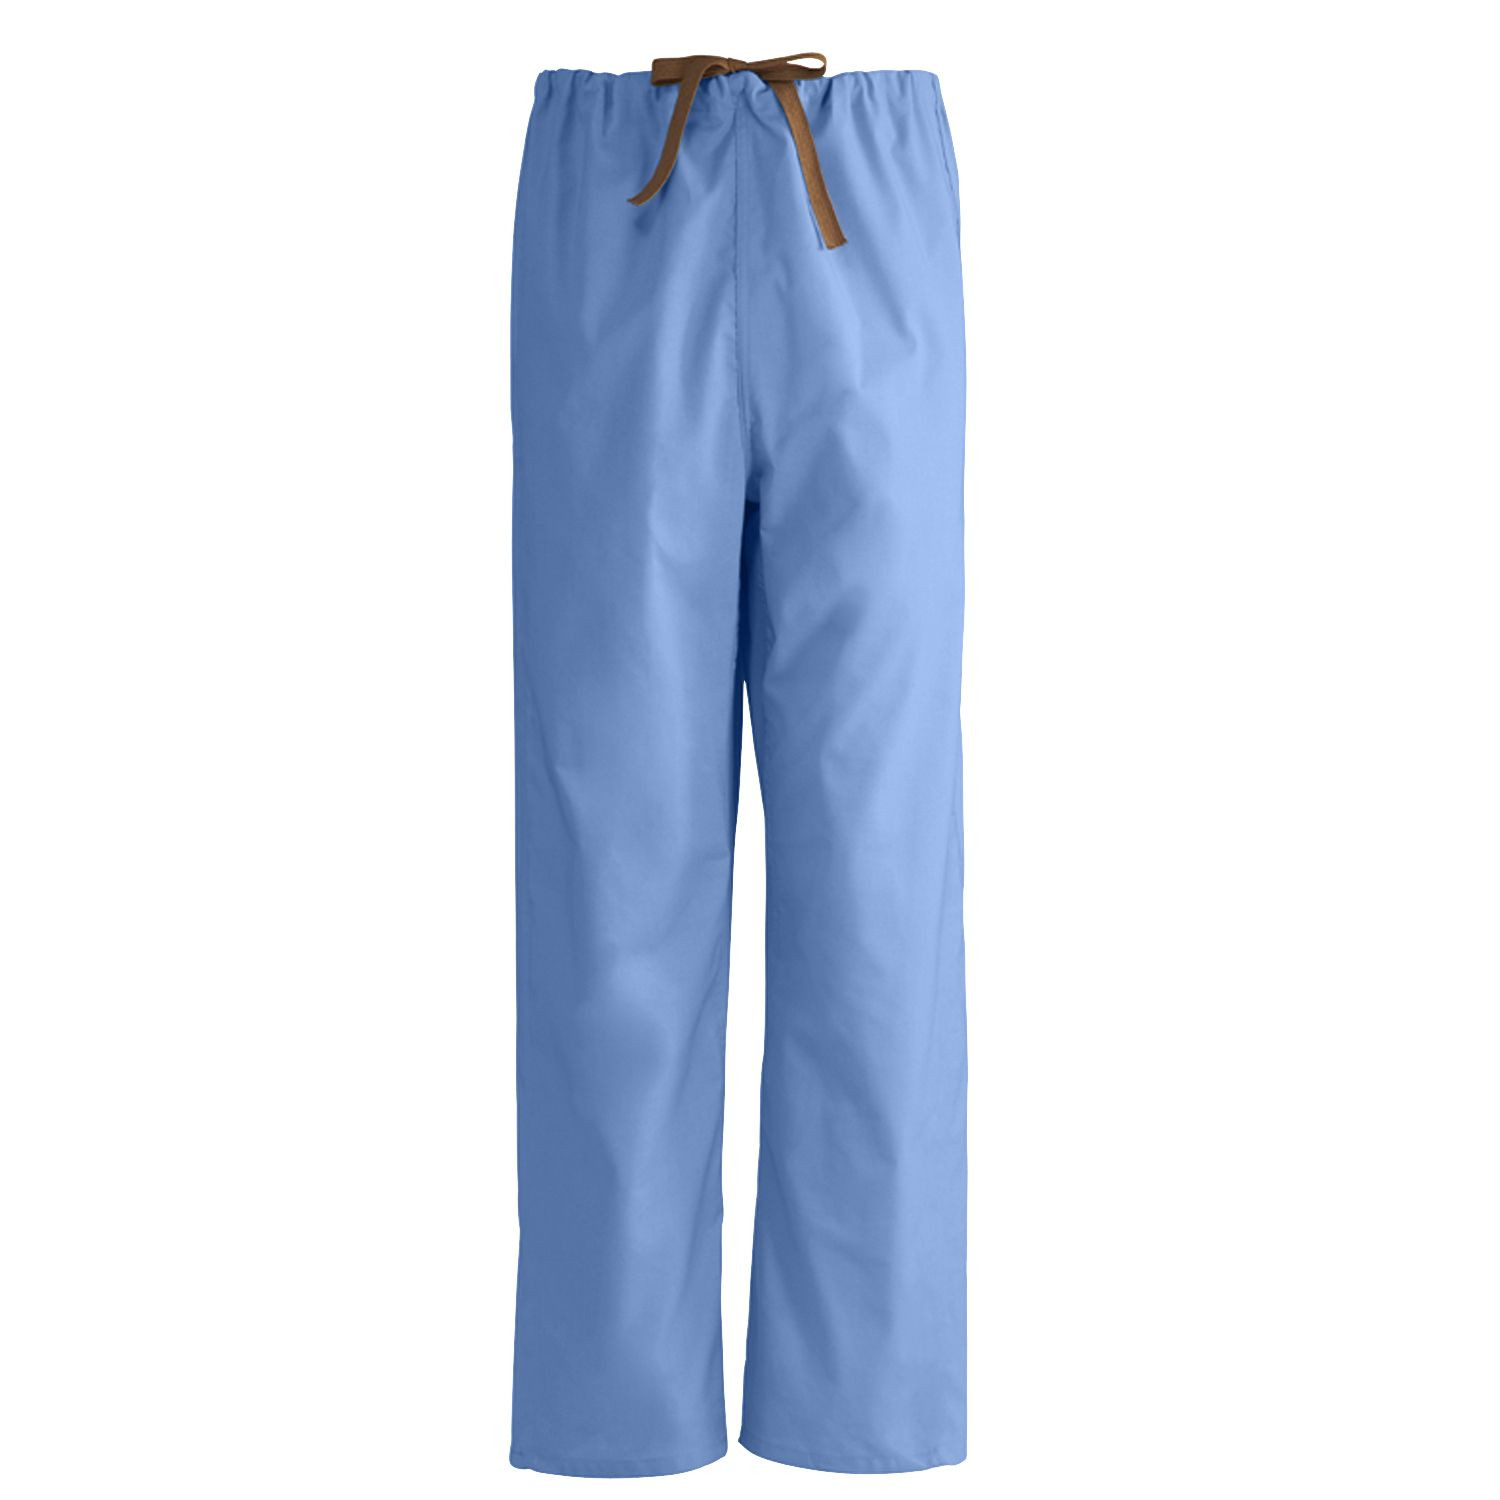 Best Of Uni Cotton Reversible Scrub Pants Cotton Cotton Scrubs Of Attractive 47 Models Cotton Scrubs